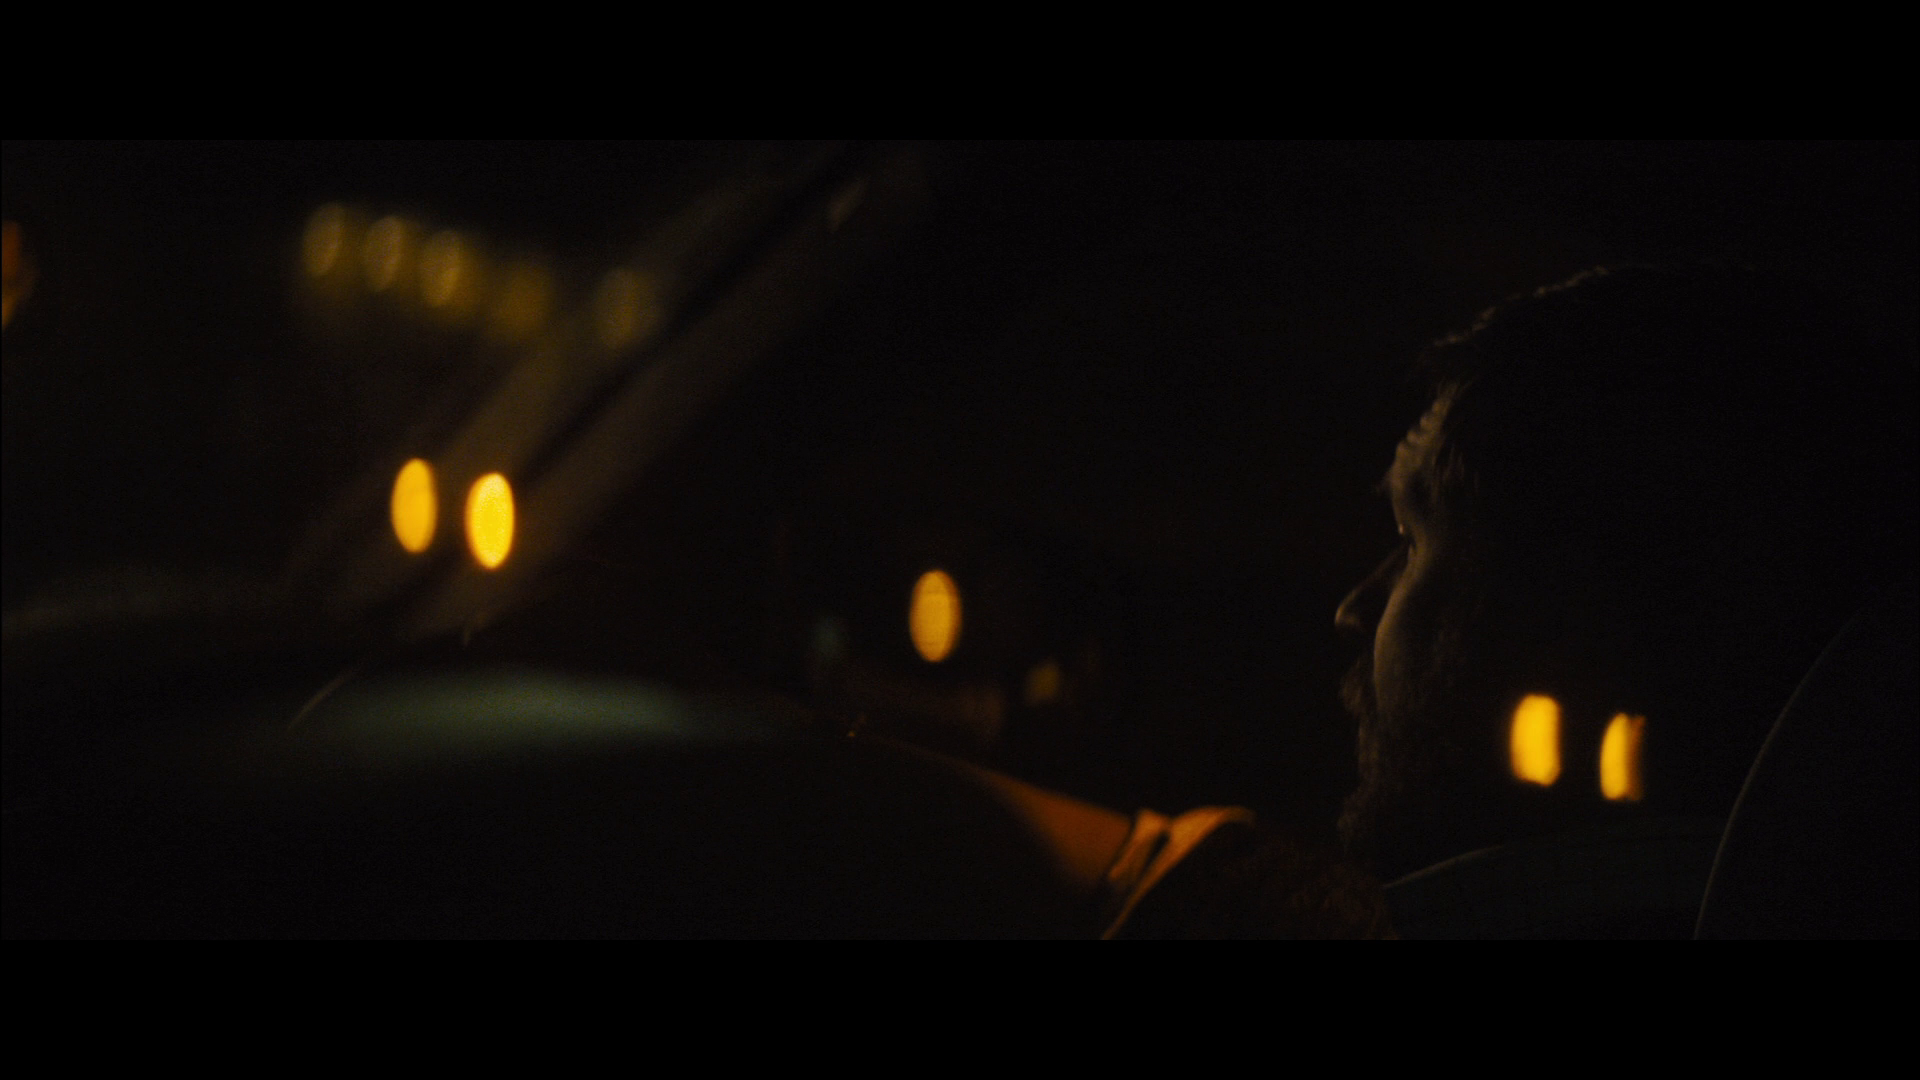 Locke 2013 BluRay REMUX 1080p AVC DTS-HD MA 5.1 - KRaLiMaRKo